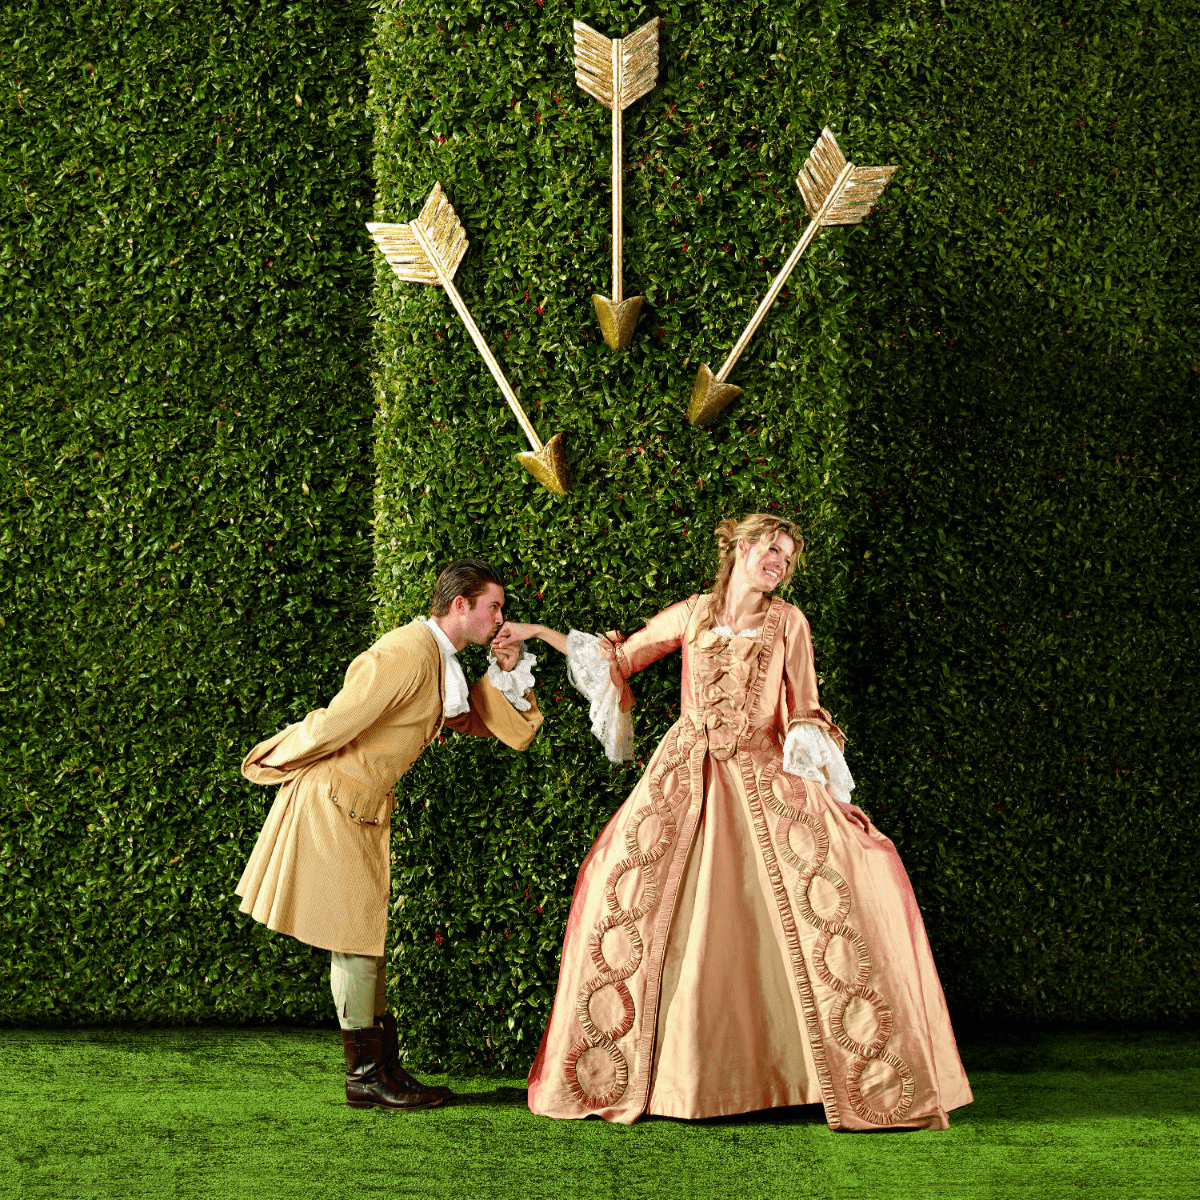 Dallas Opera presents The Marriage of Figaro